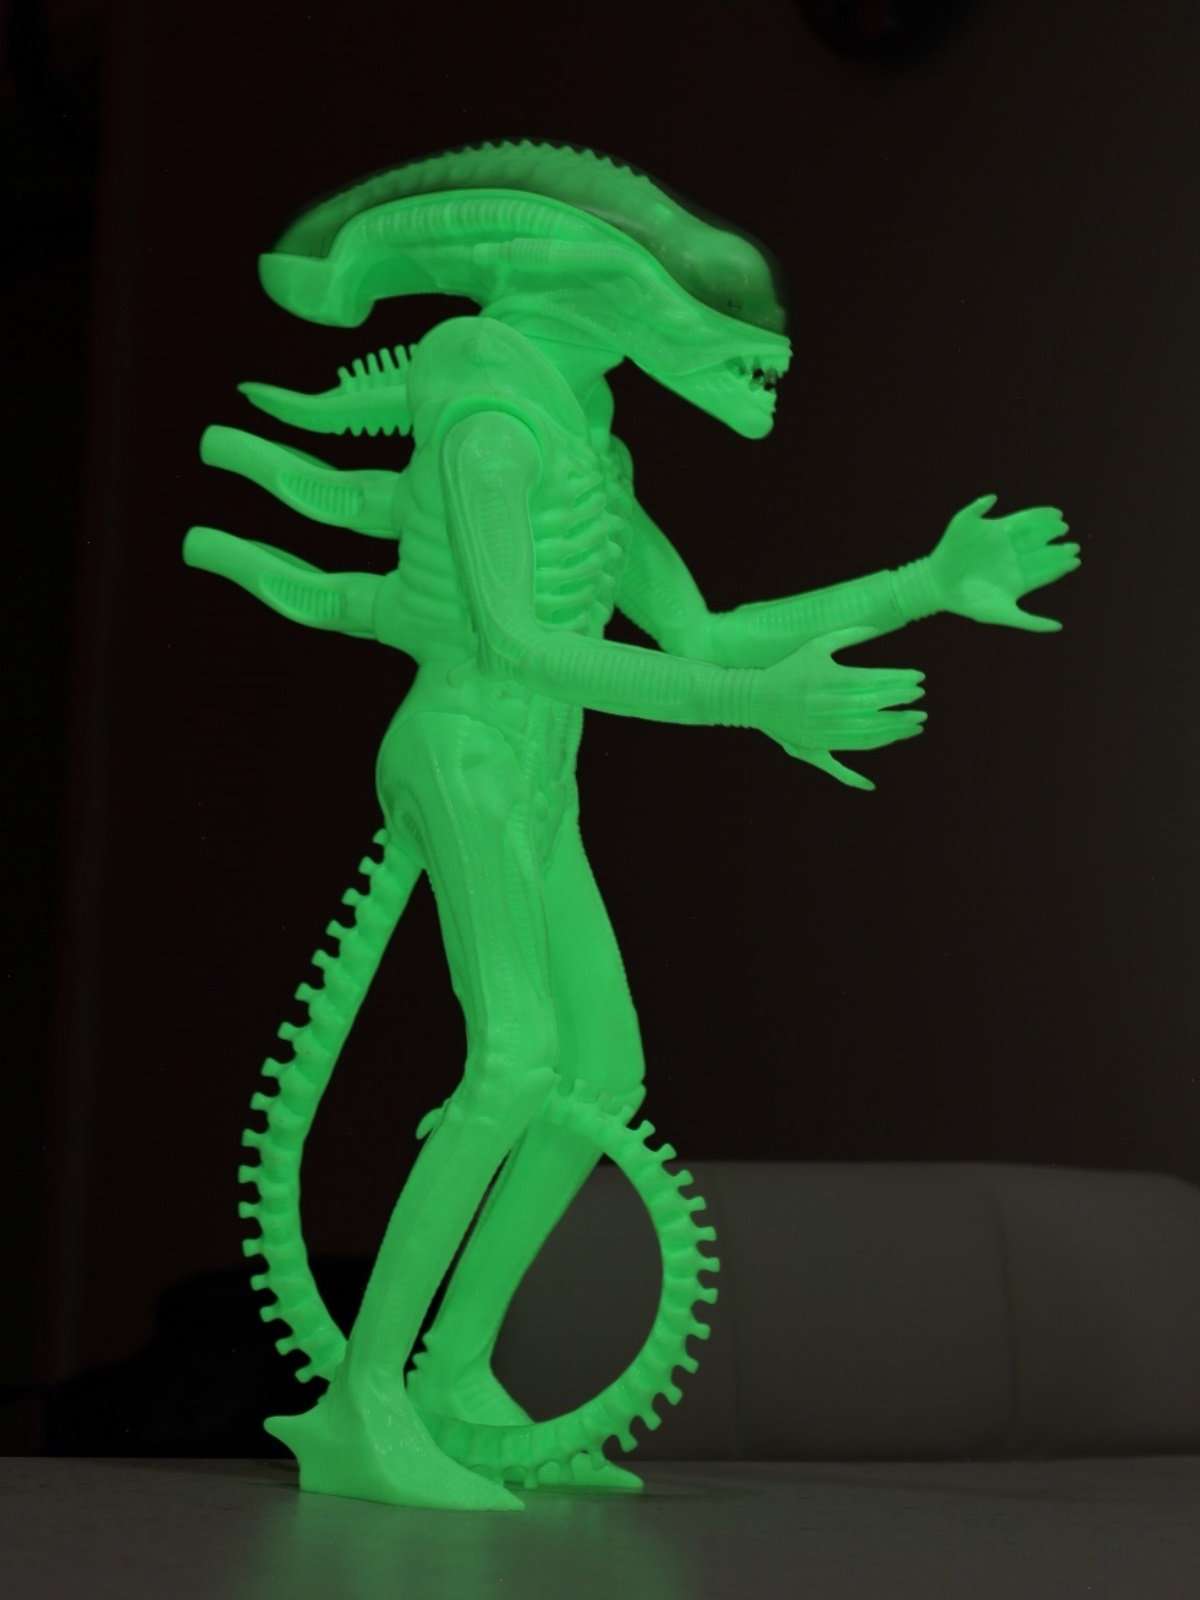 24 inch tall Gentle Giant glow in the dark ALIEN action figure with lights out.